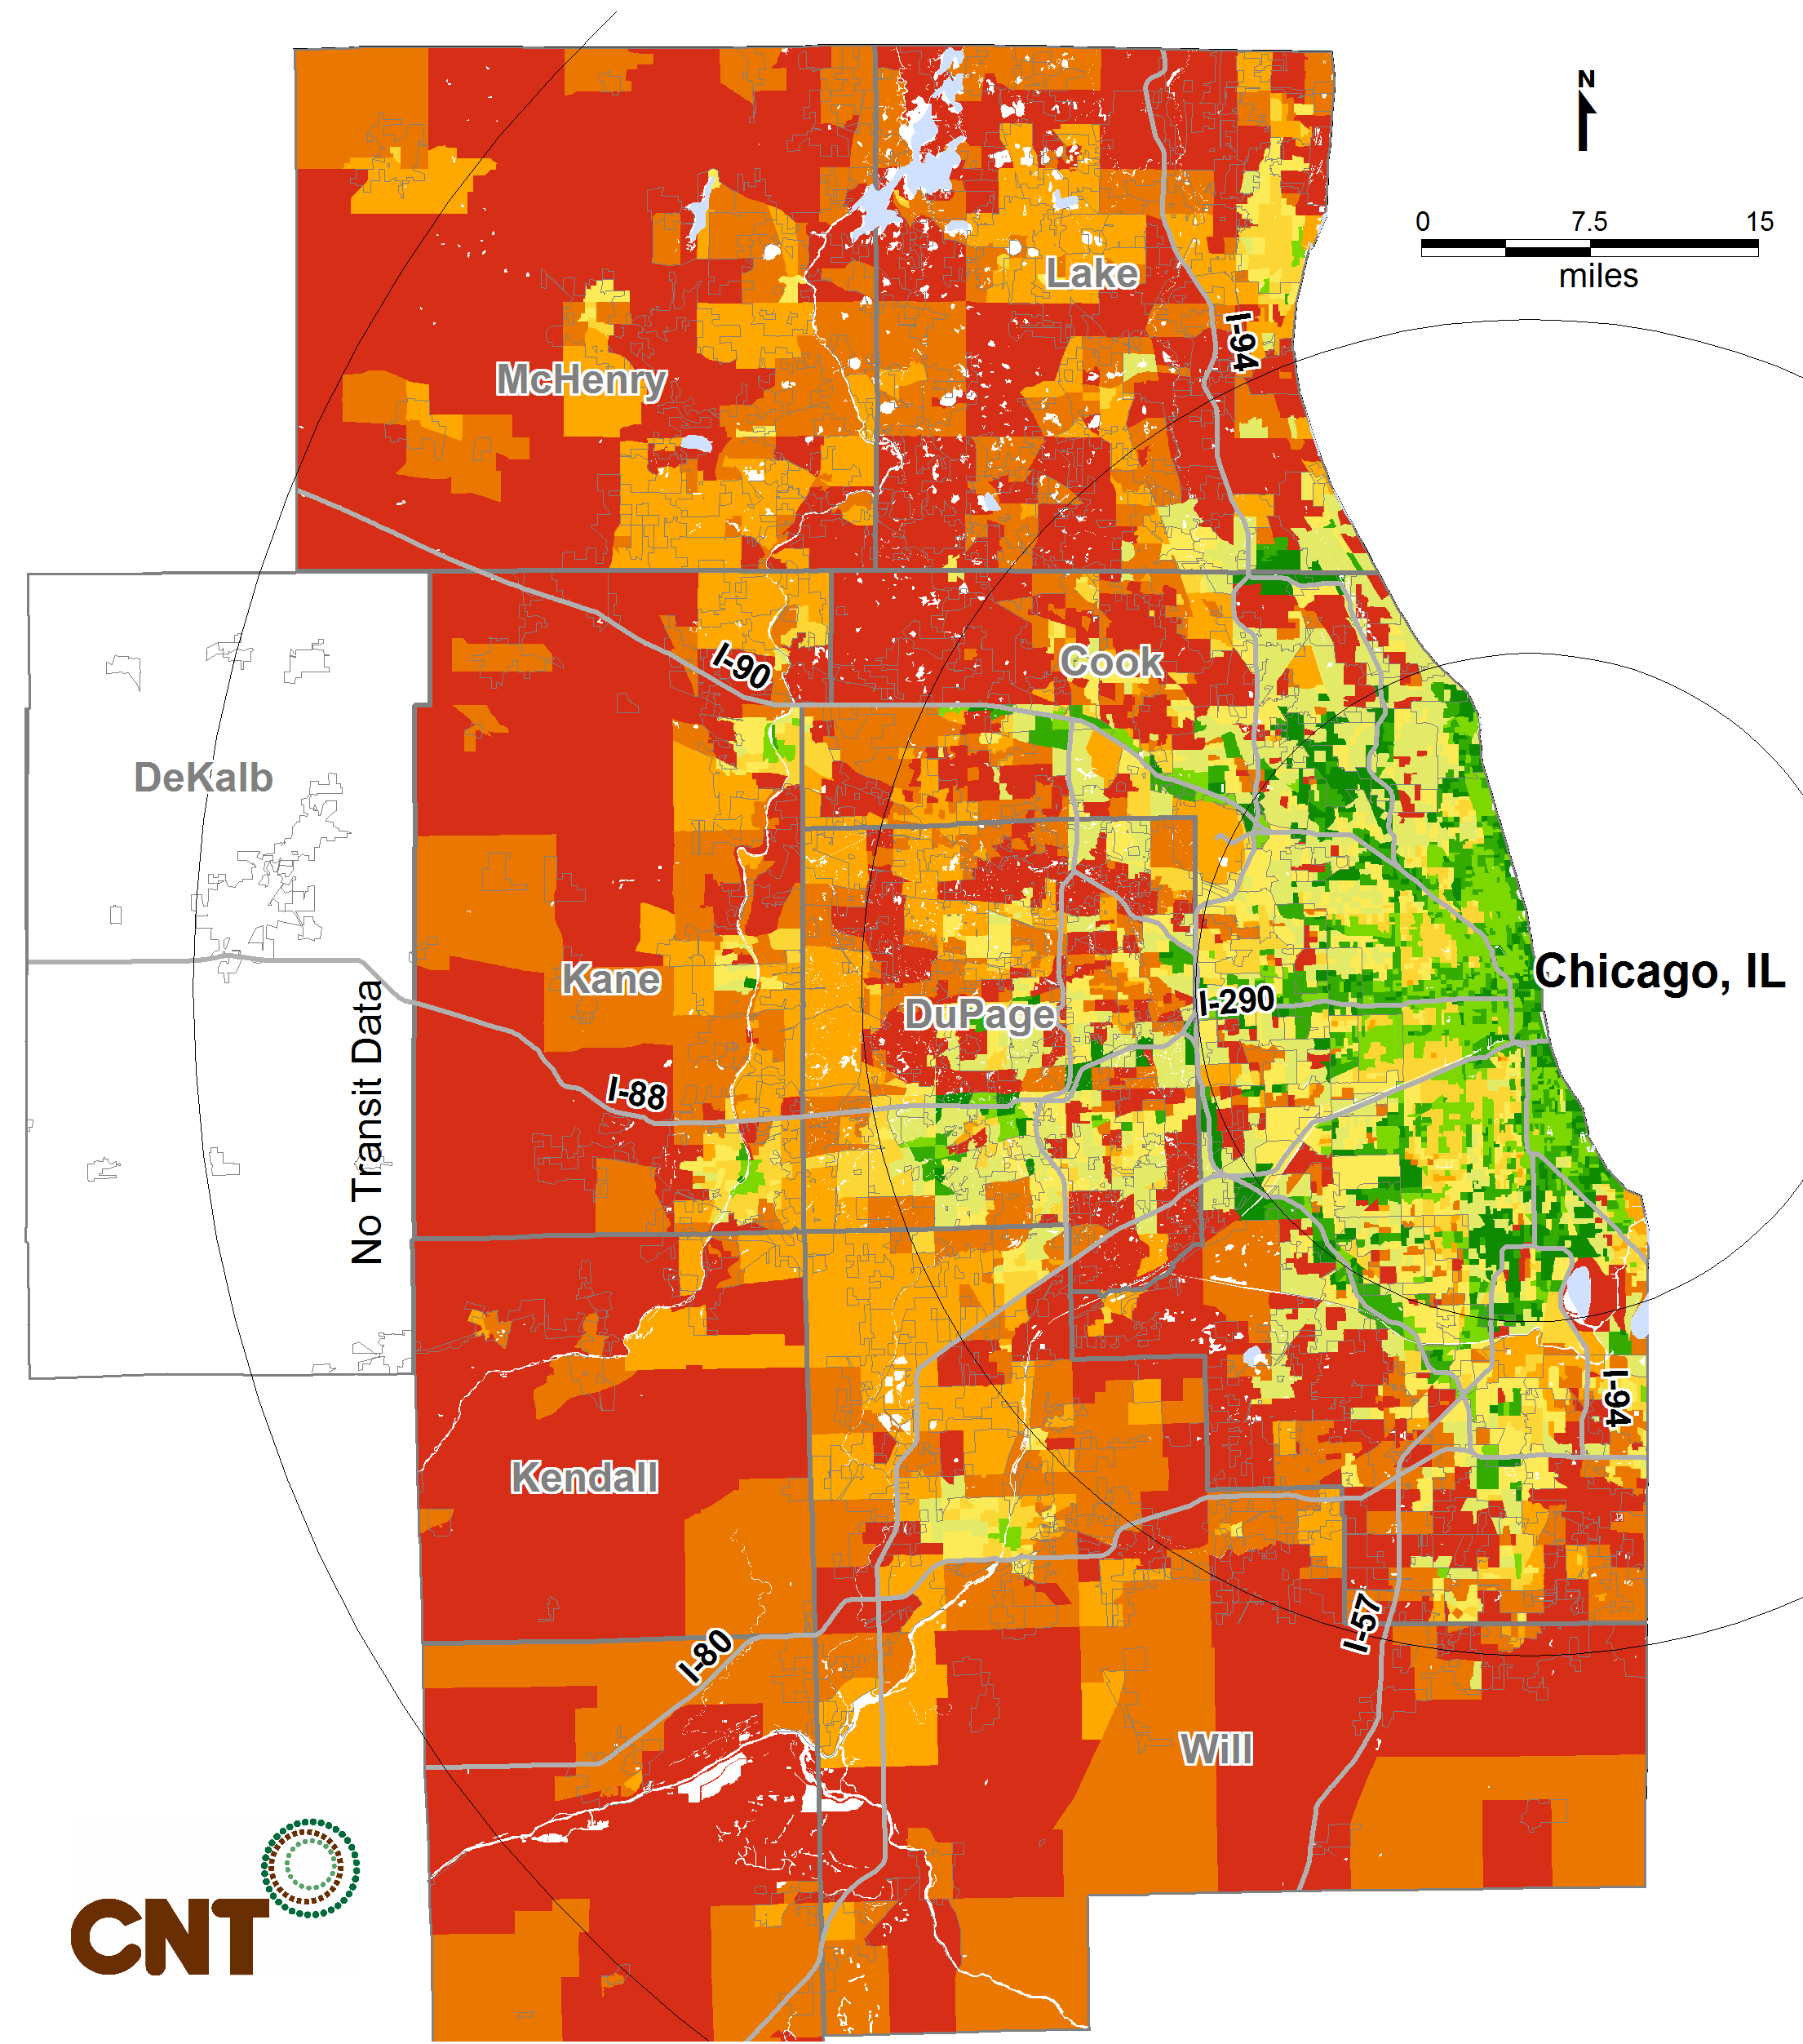 METROPOLITAN TRANSIT ACCESS CASE STUDIES Chicago, Illinois in 2015 By 2015, 6 percent of urban seniors age 65-79 are projected to have poor transit access, while the percentage of suburban and